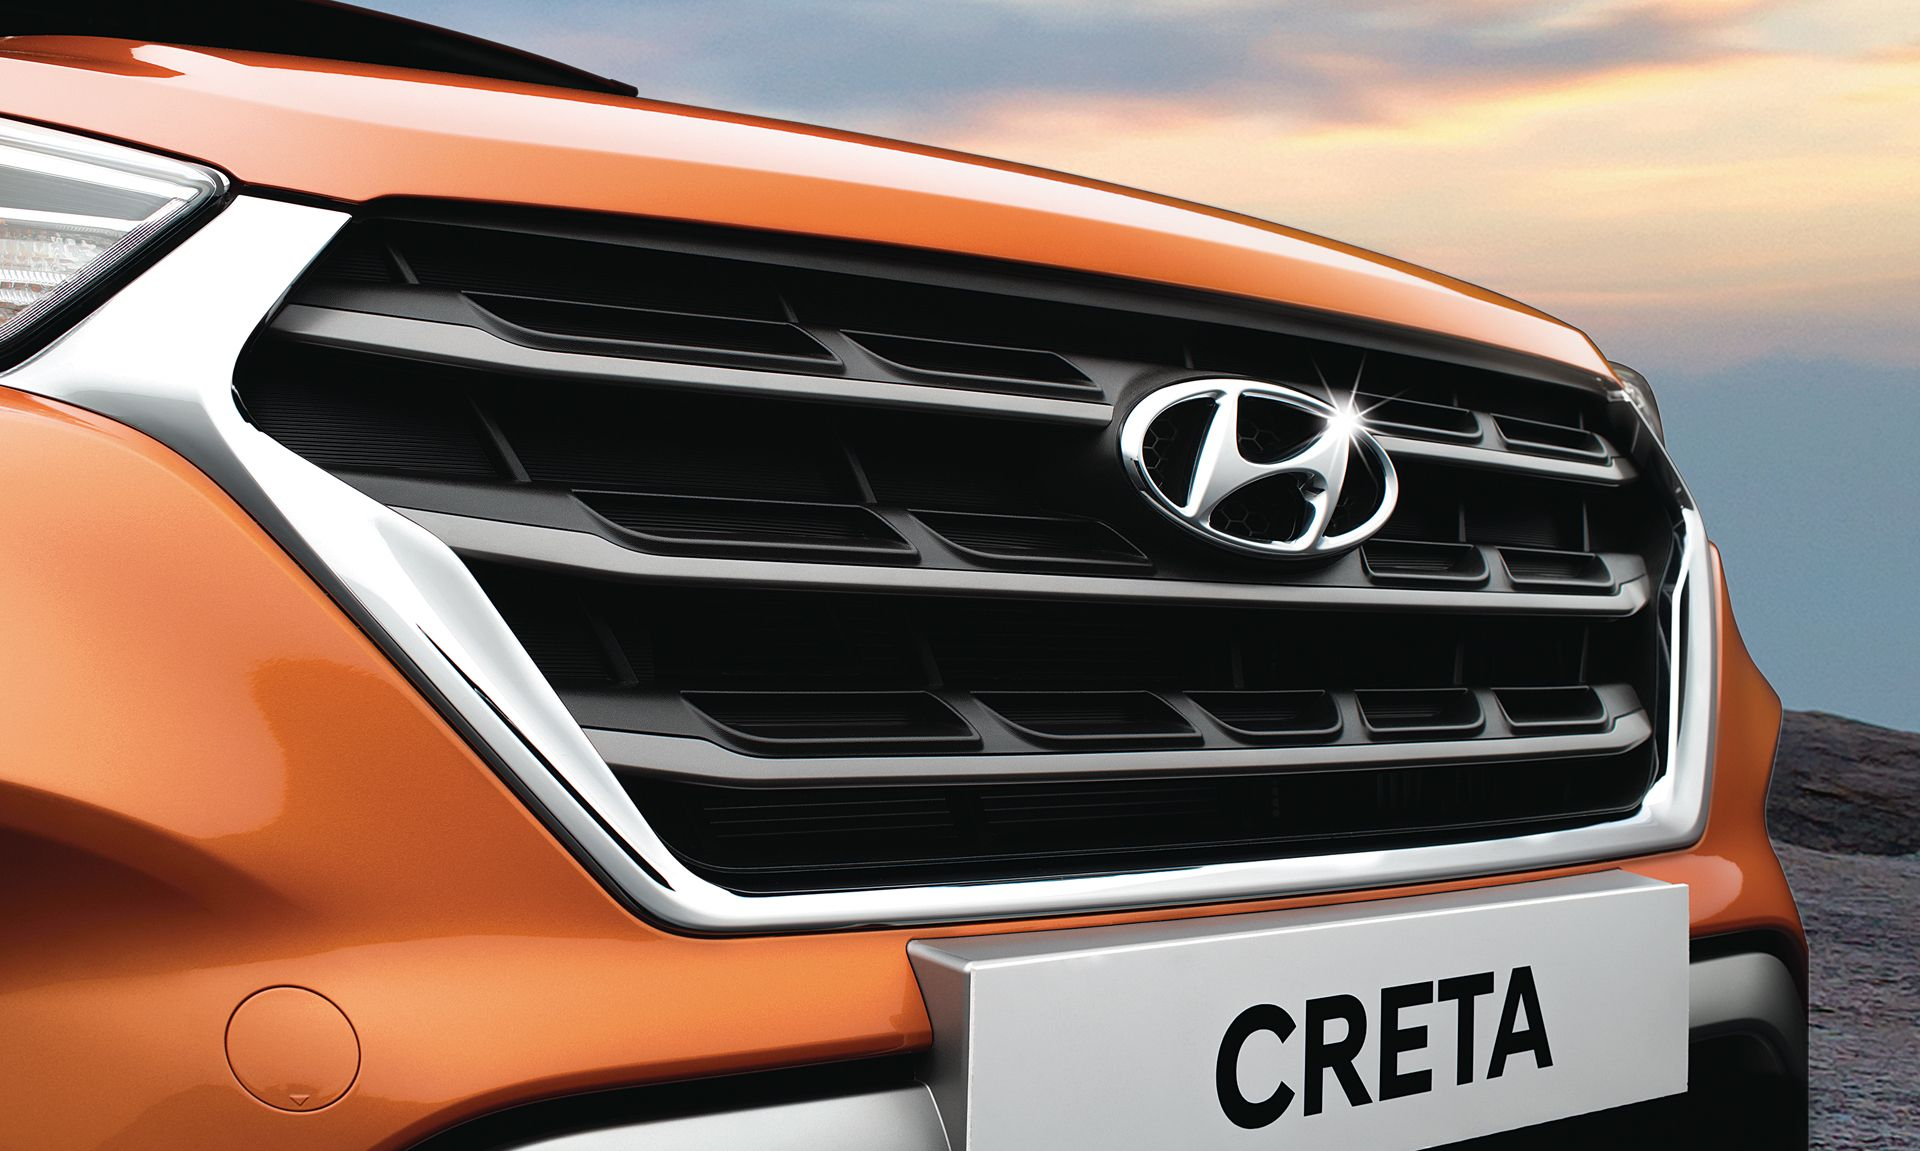 The New 2018 Hyundai Creta - Features, Price in India, Specs, Colors